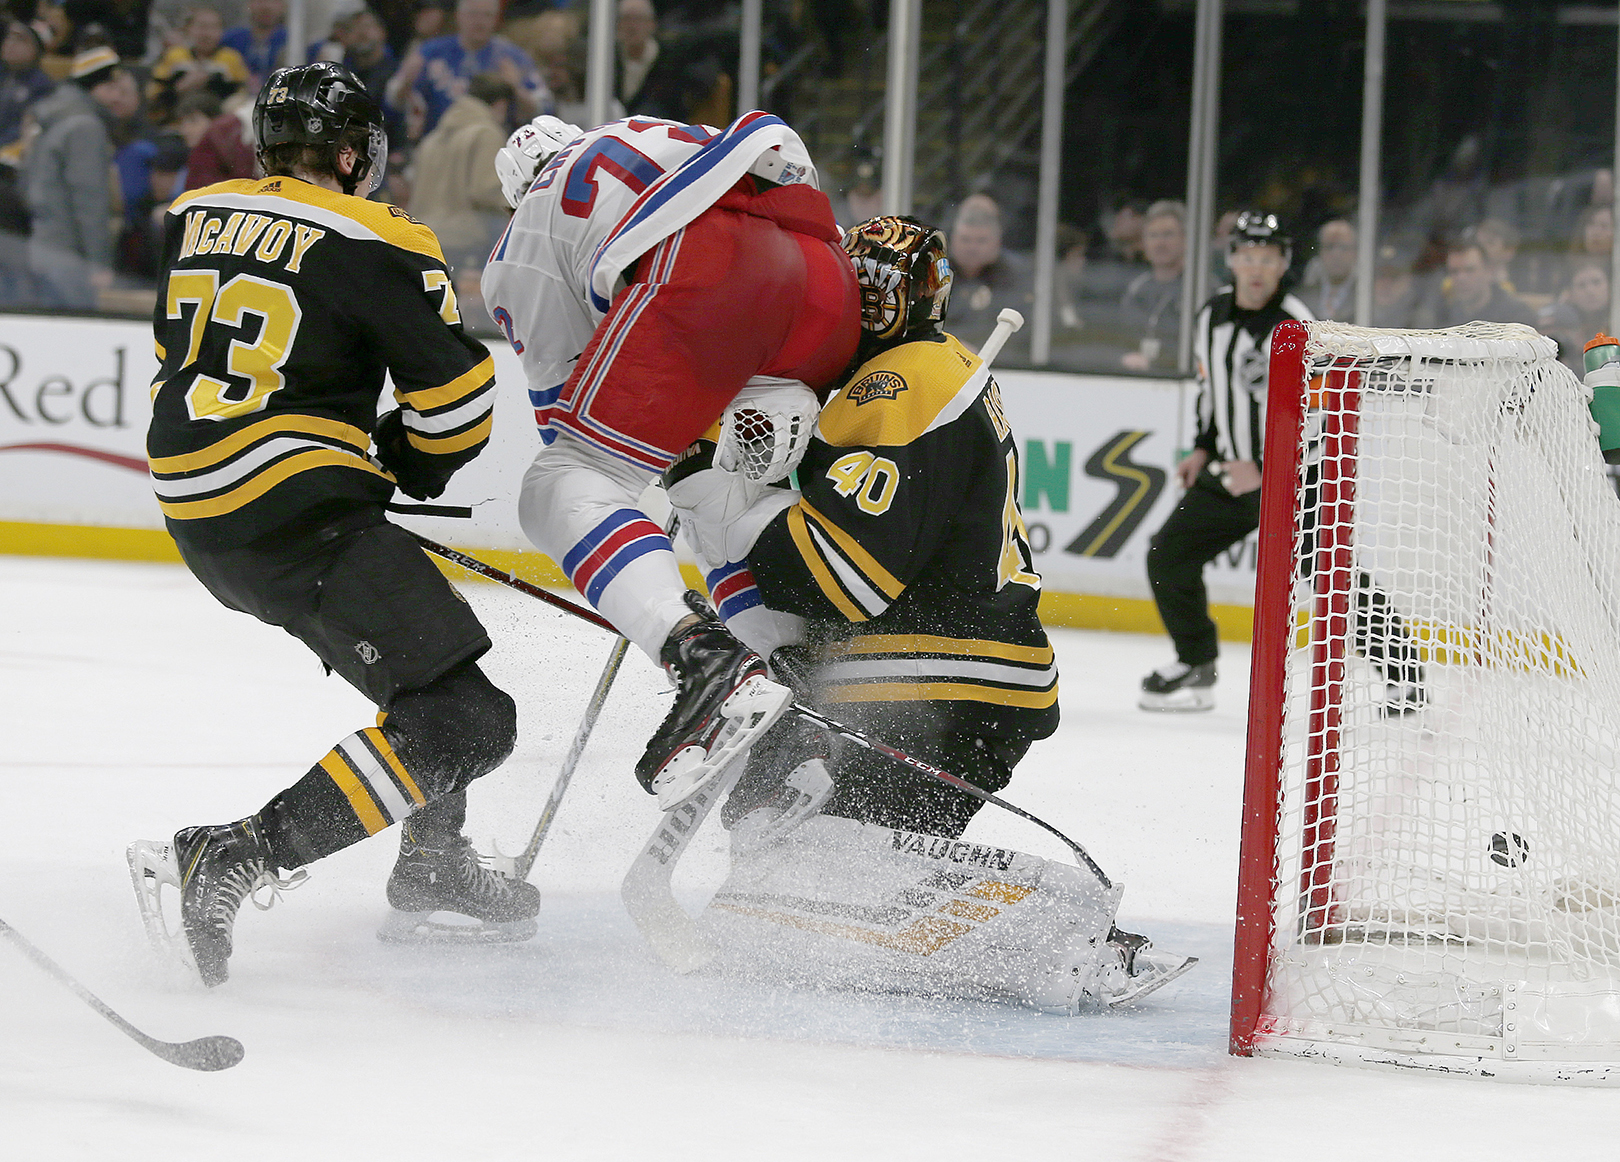 ce4ecbd2e New York Rangers center Filip Chytil (72) collides with Boston Bruins  goaltender Tuukka Rask (40) as he scores a goal